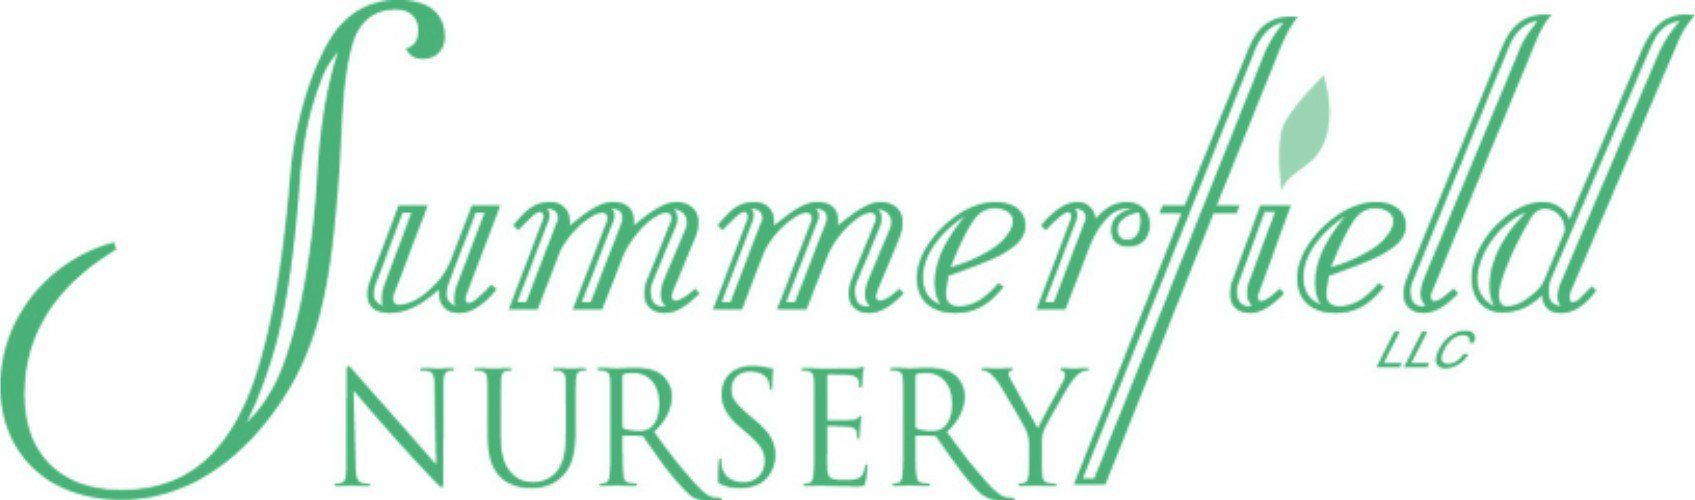 Summerfield Nursery